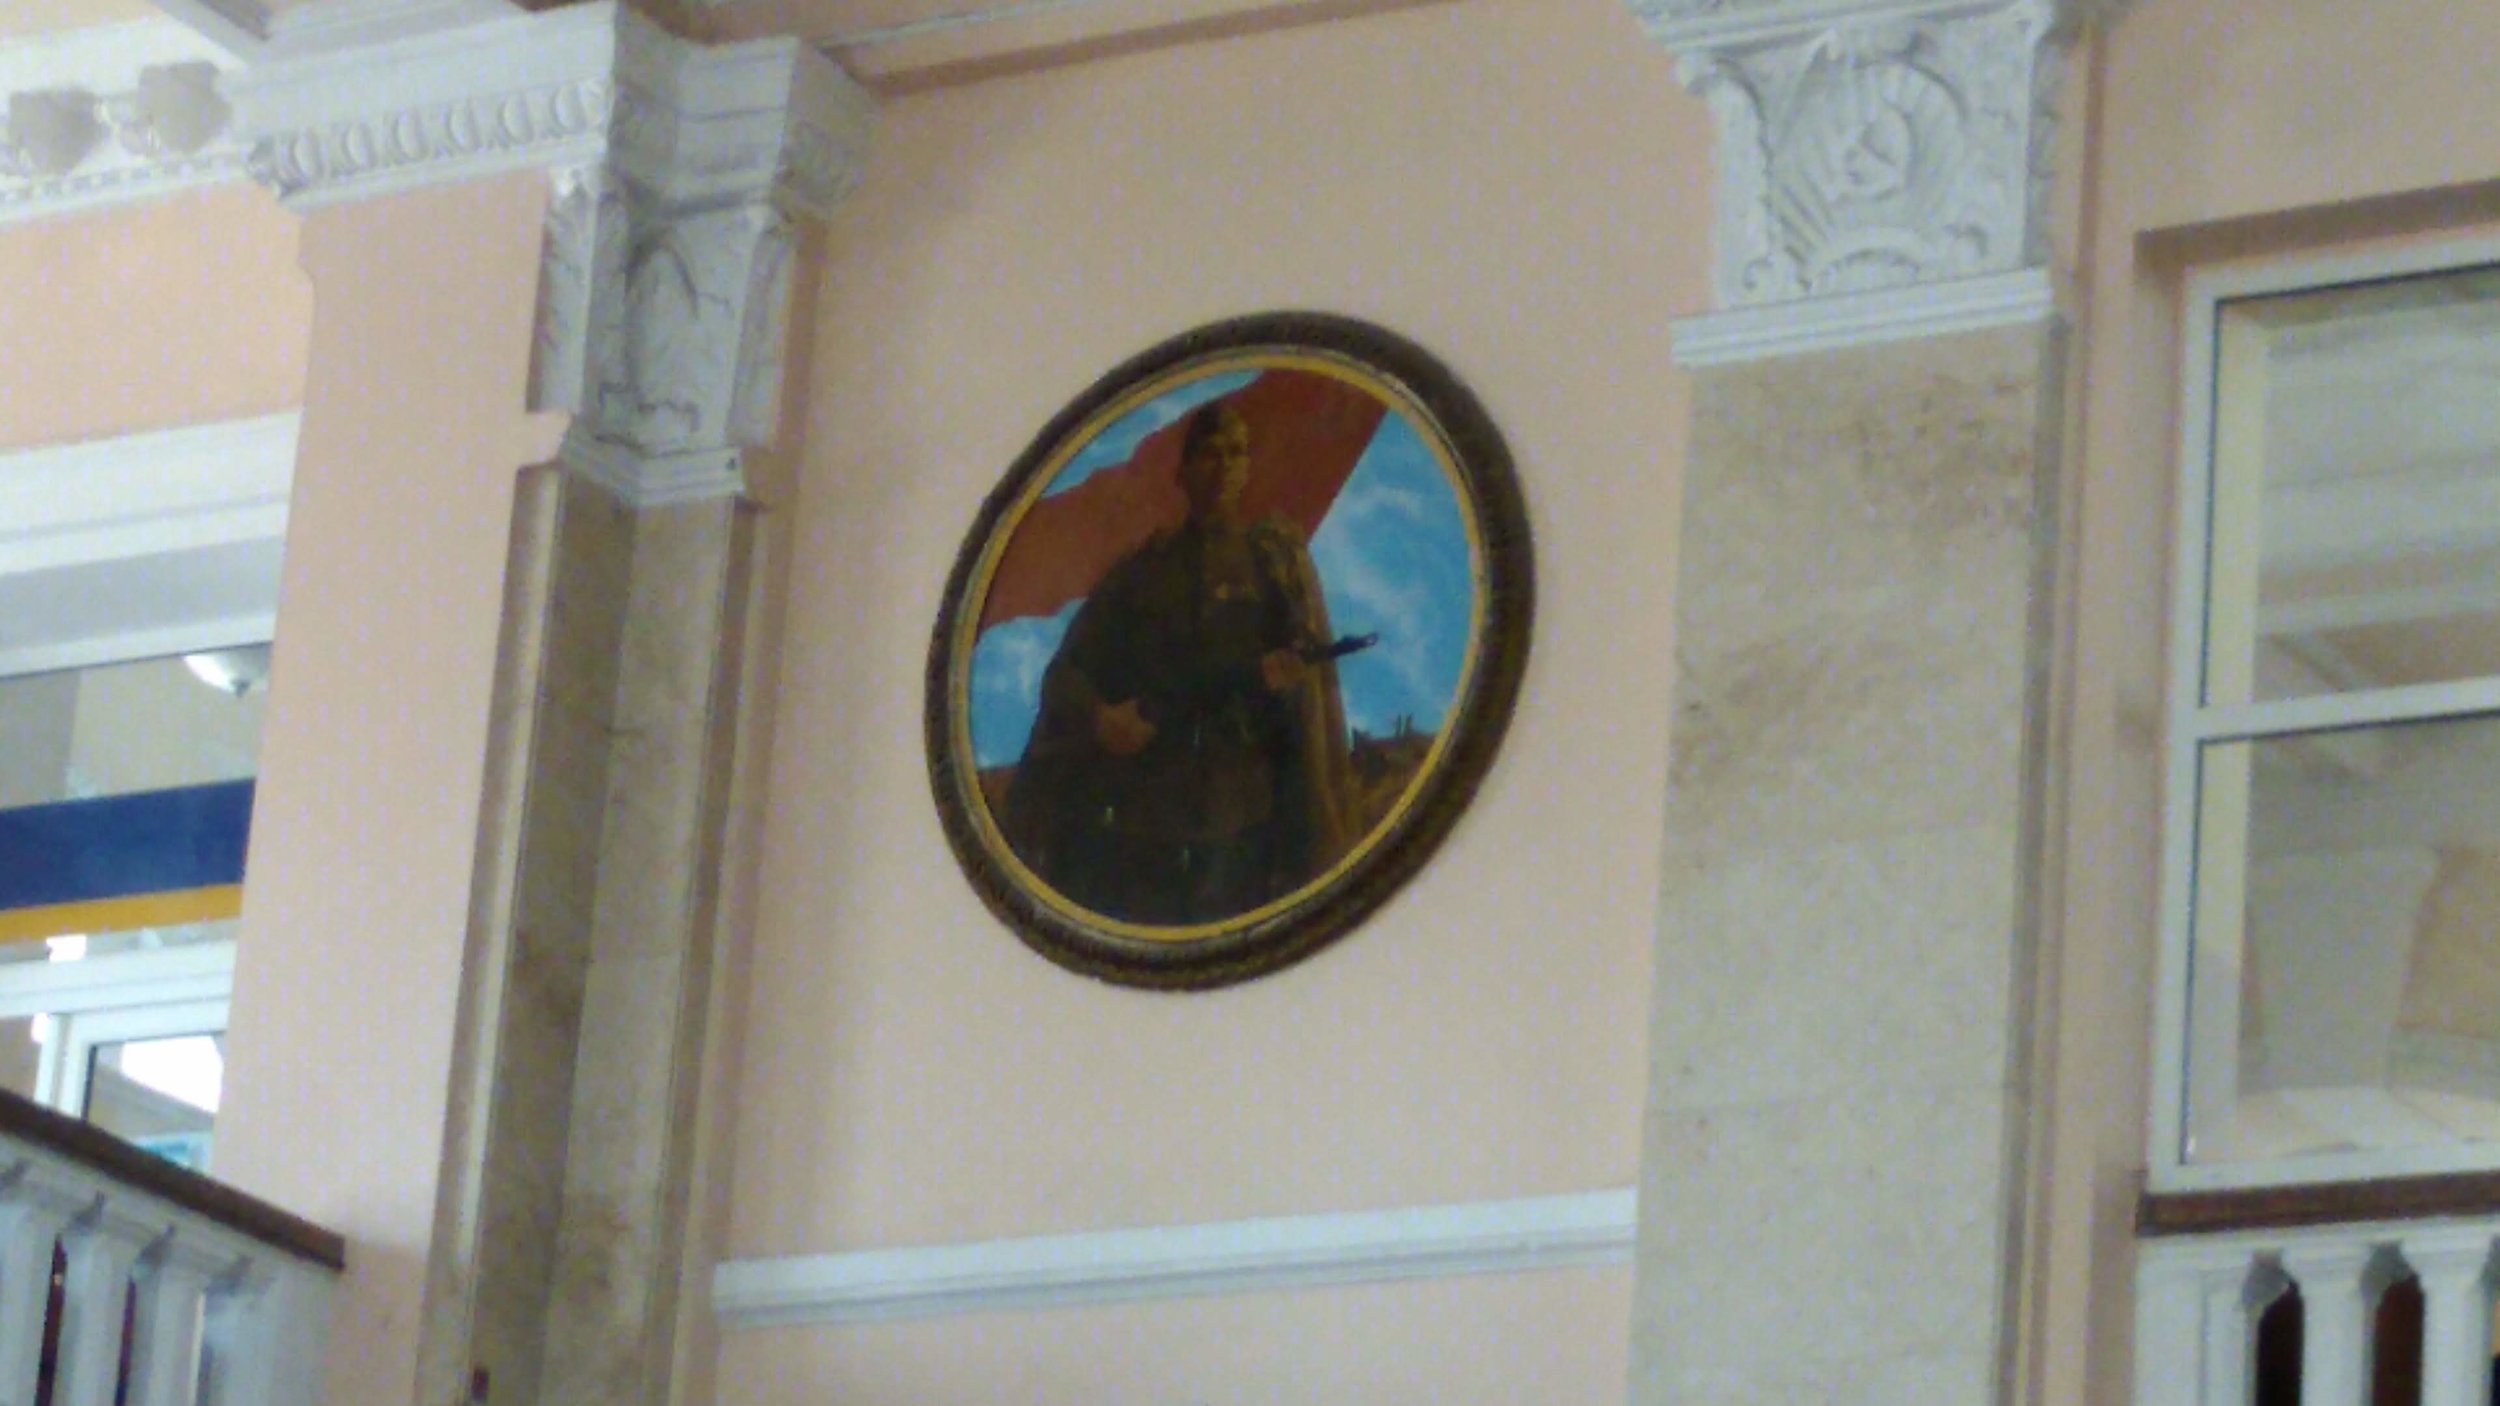 Soviet period portrait in the Odessa, Ukraine central train station